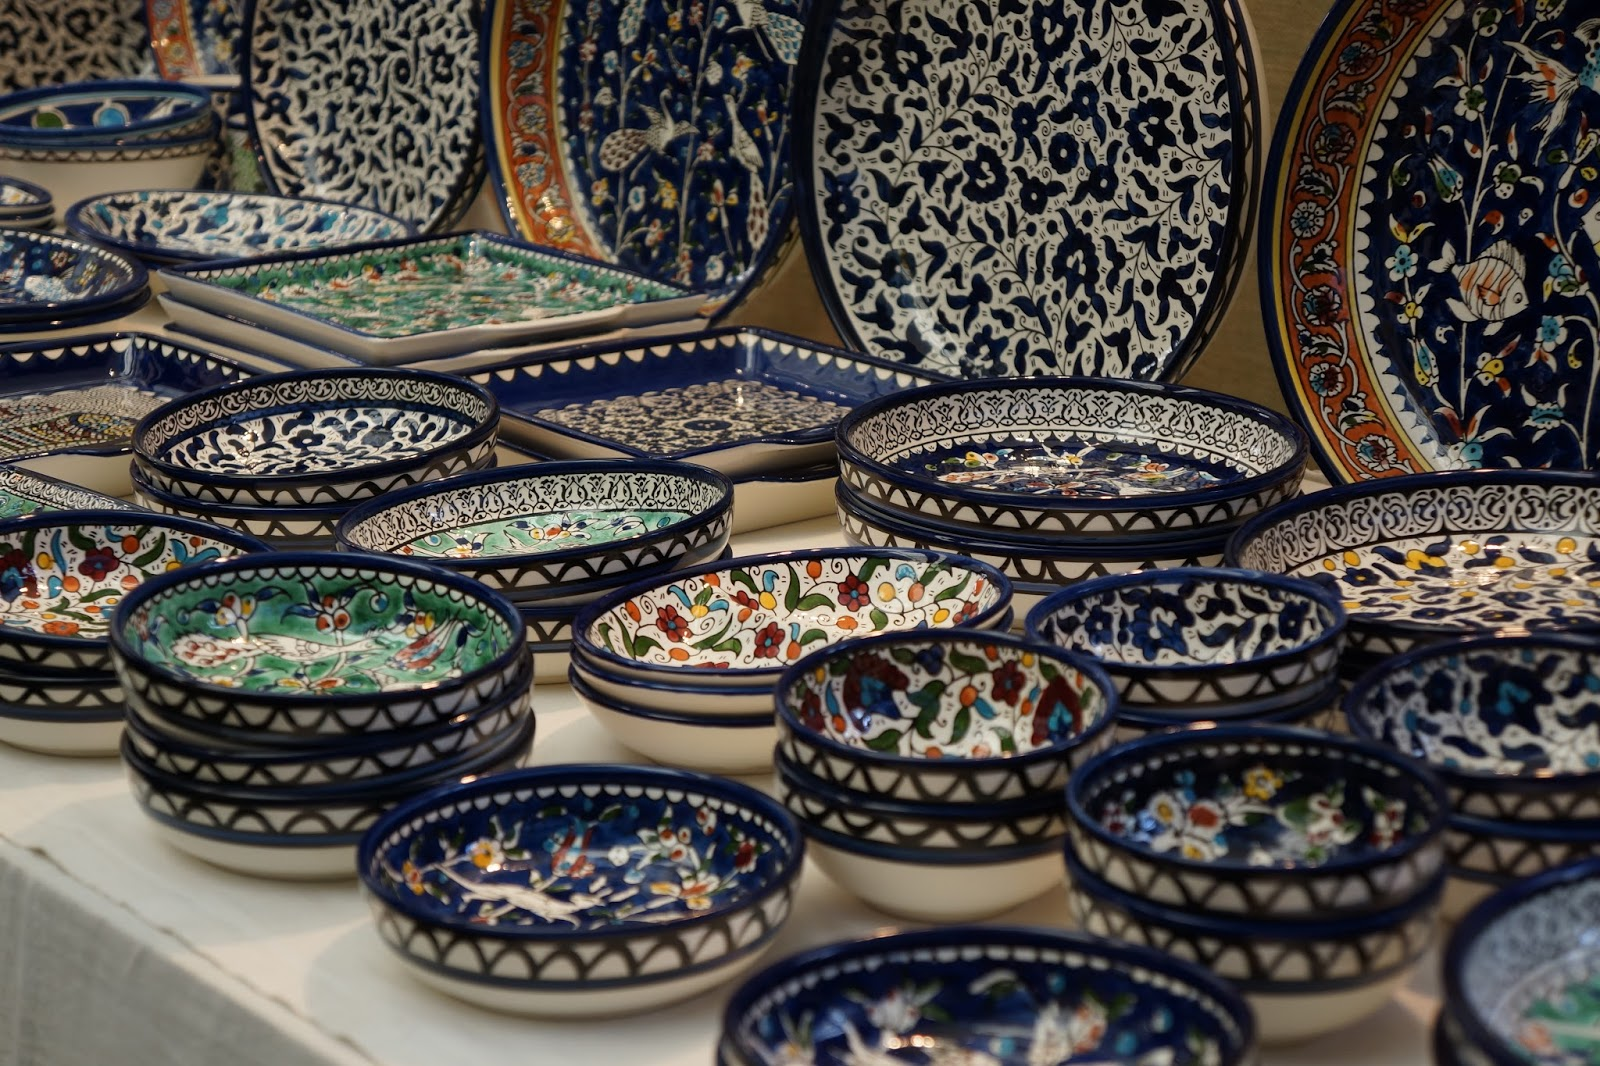 ornamental plates at greenwich market stall